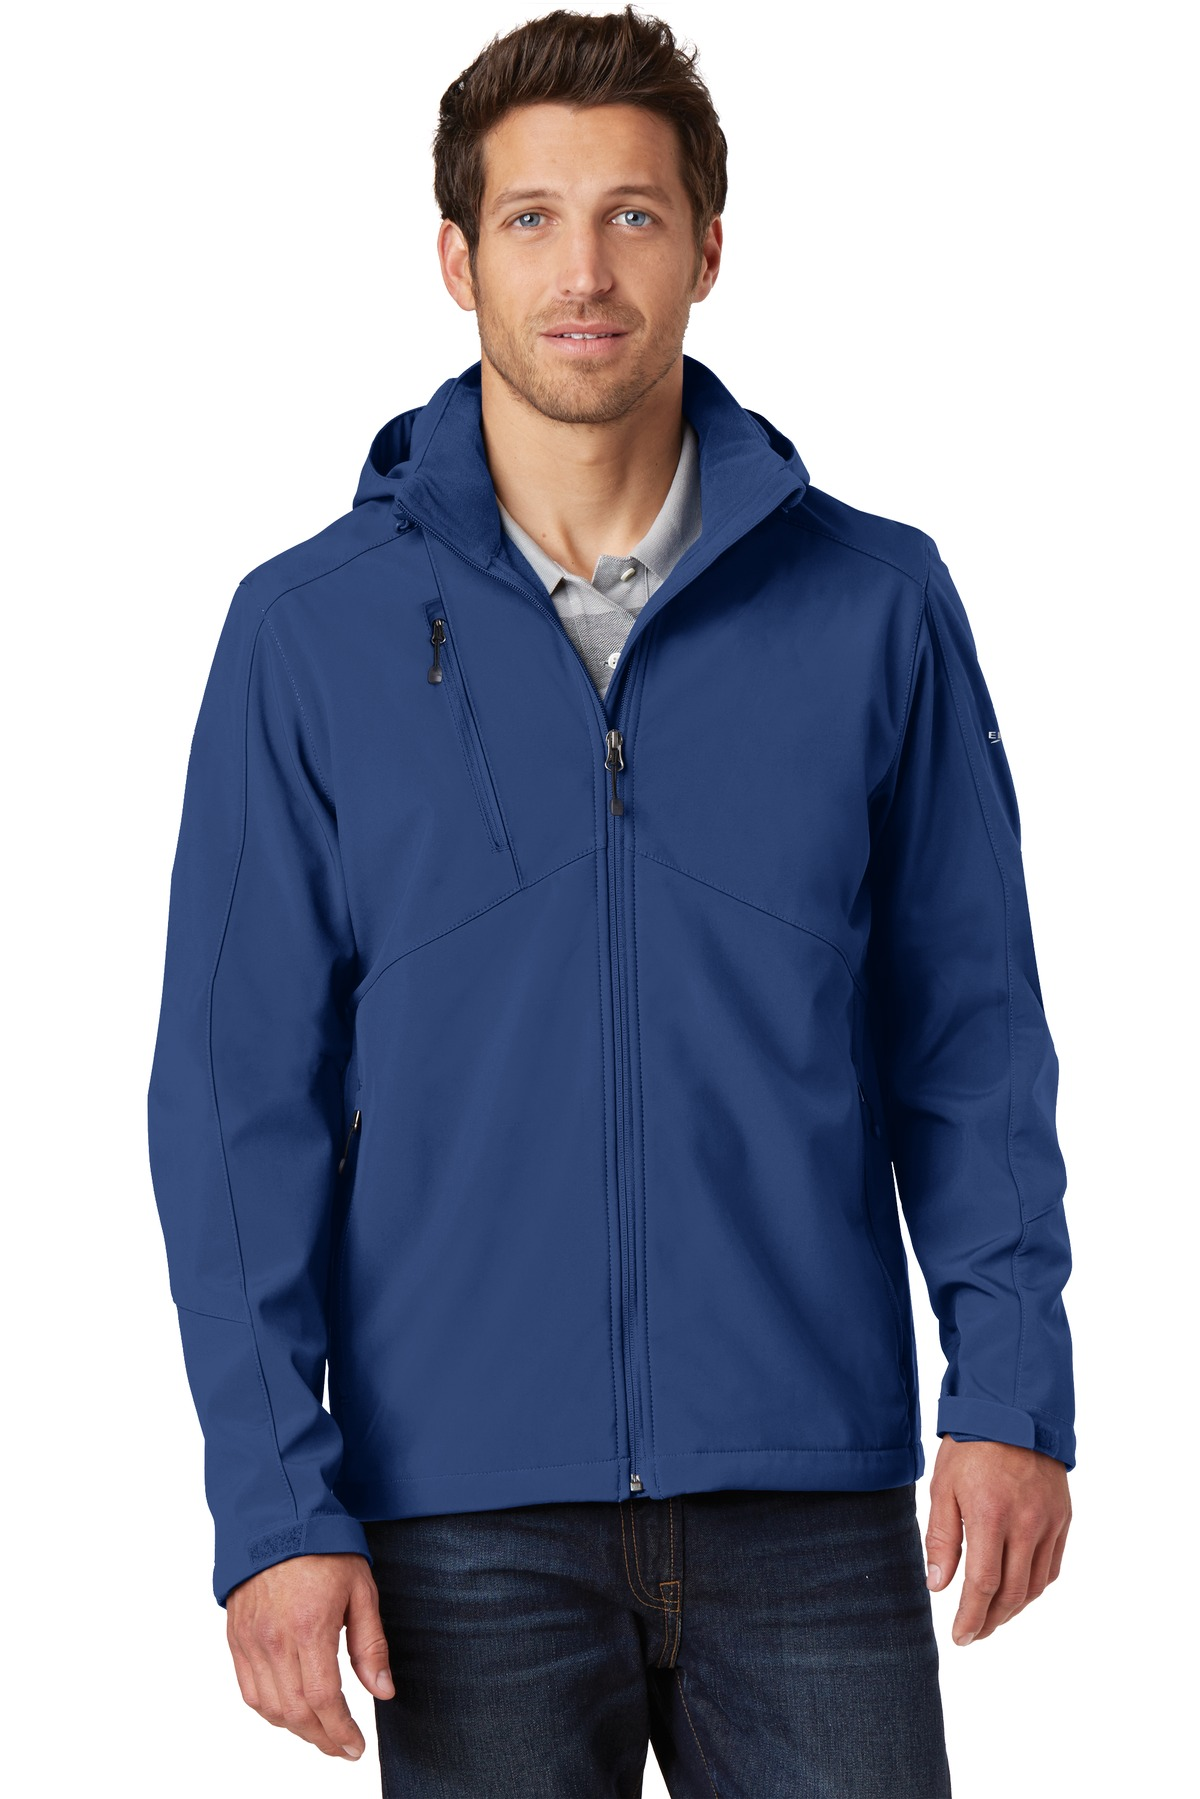 Eddie Bauer  EB536 - Hooded Soft Shell Parka